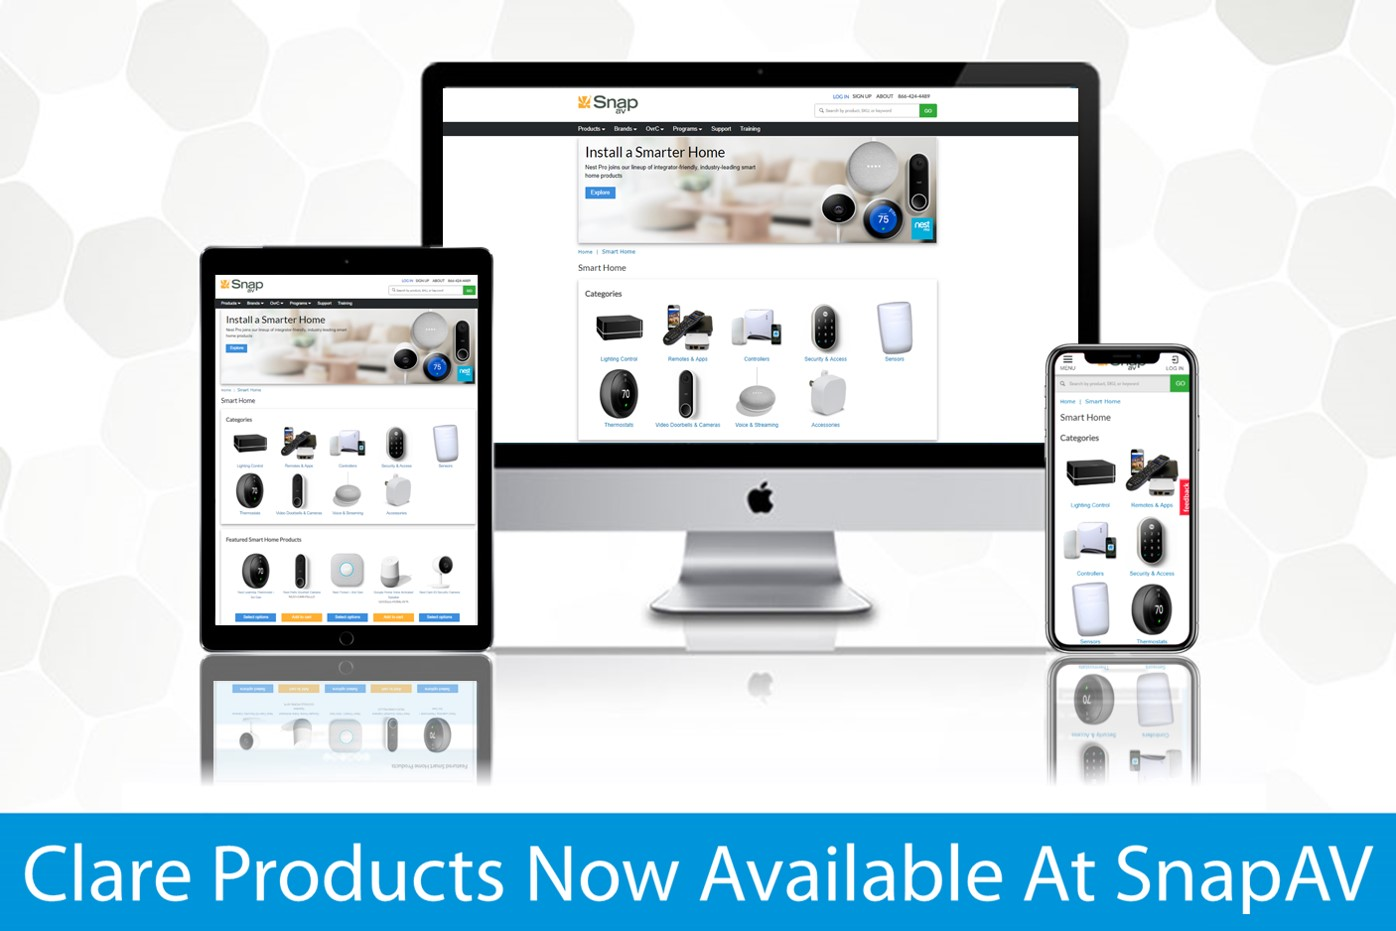 Clare Products Available to Purchase Through SnapAV